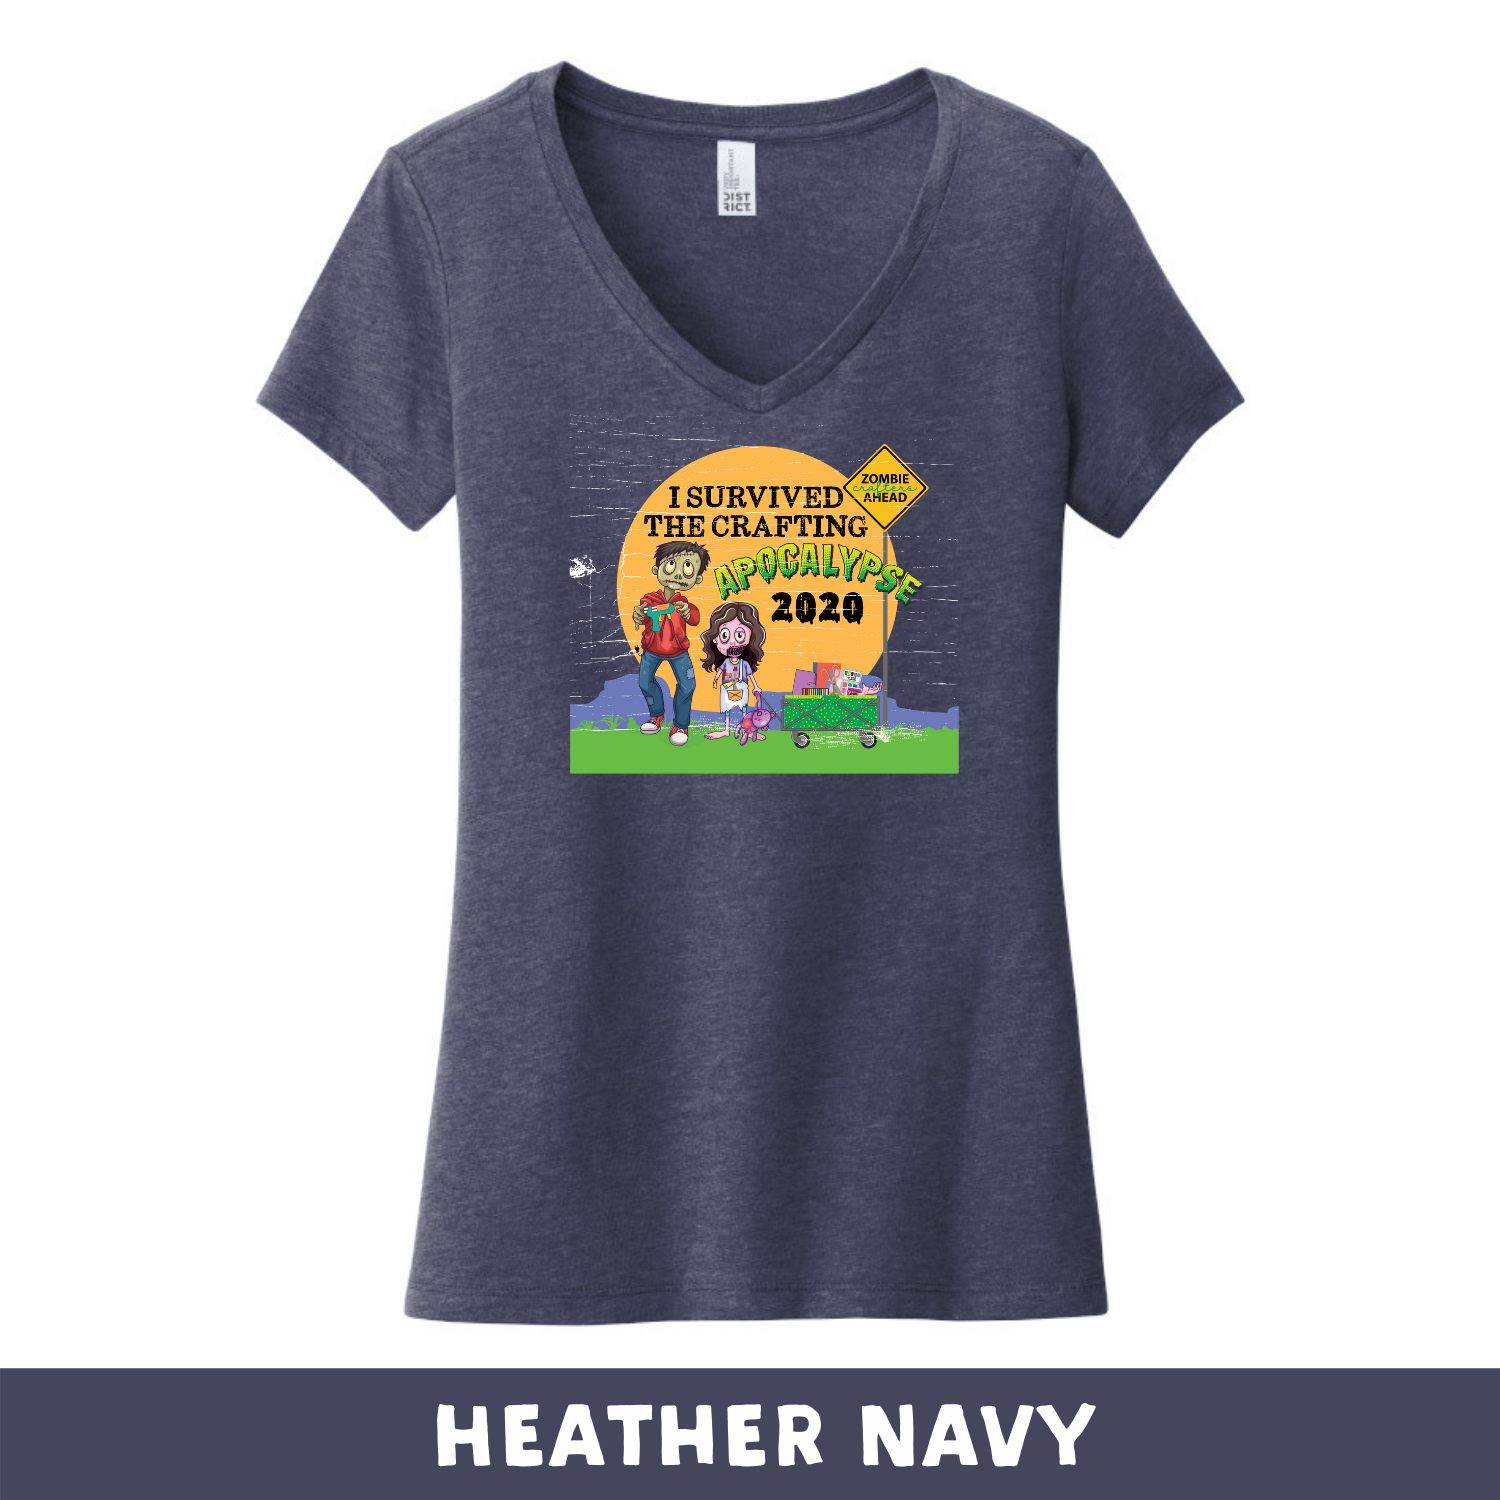 Heather Navy - Woman's Cut V-Neck - Heathered & Frosts - I Survived The 2020 Crafting Apocalypse